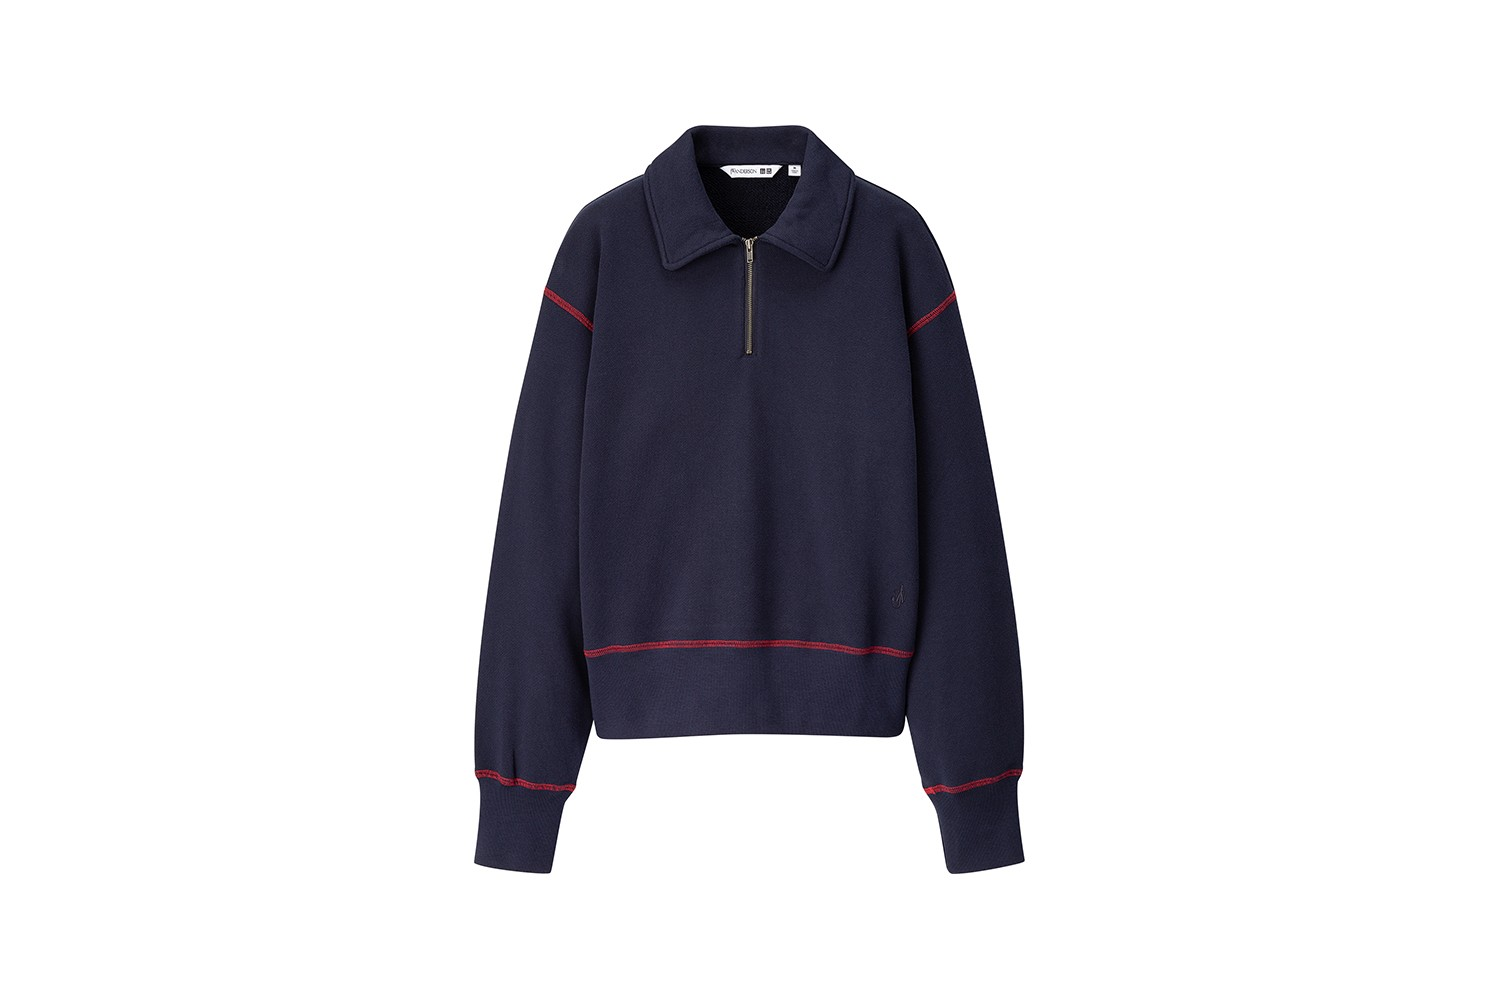 jw anderson uniqlo jonathan fall winter collaboration full lookbook jackets sweaters coats